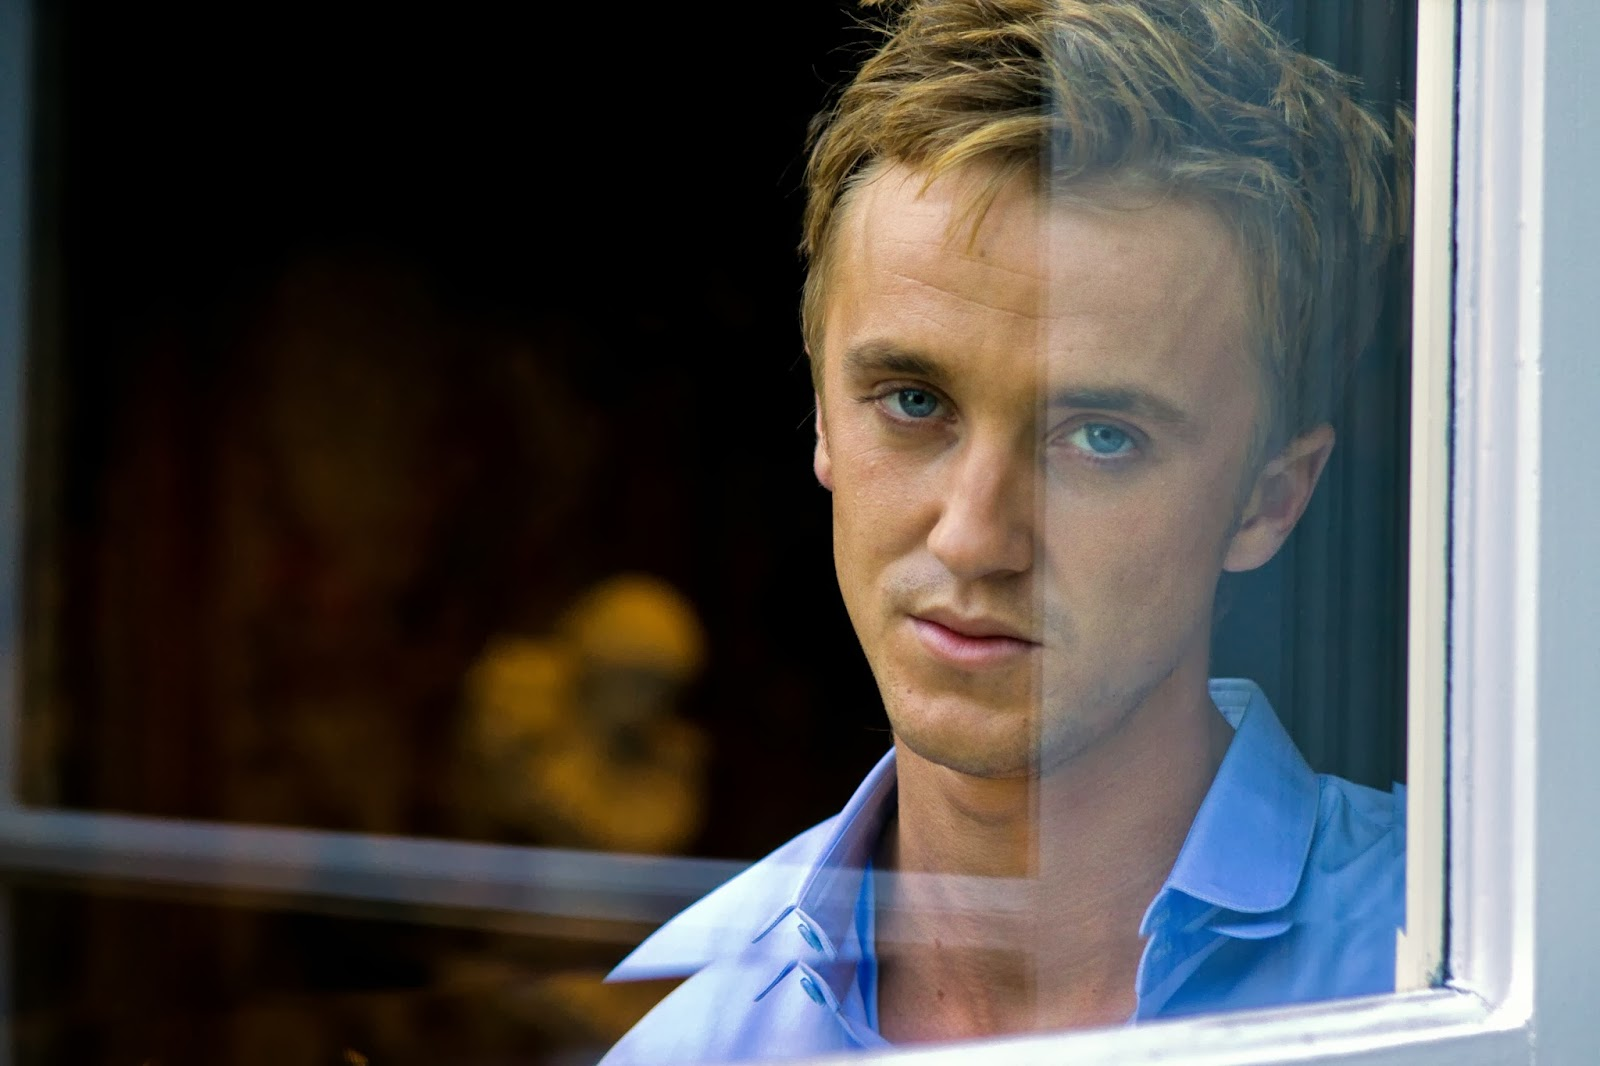 ALL ABOUT HOLLYWOOD STARS: Tom Felton hd Wallpapers 2013